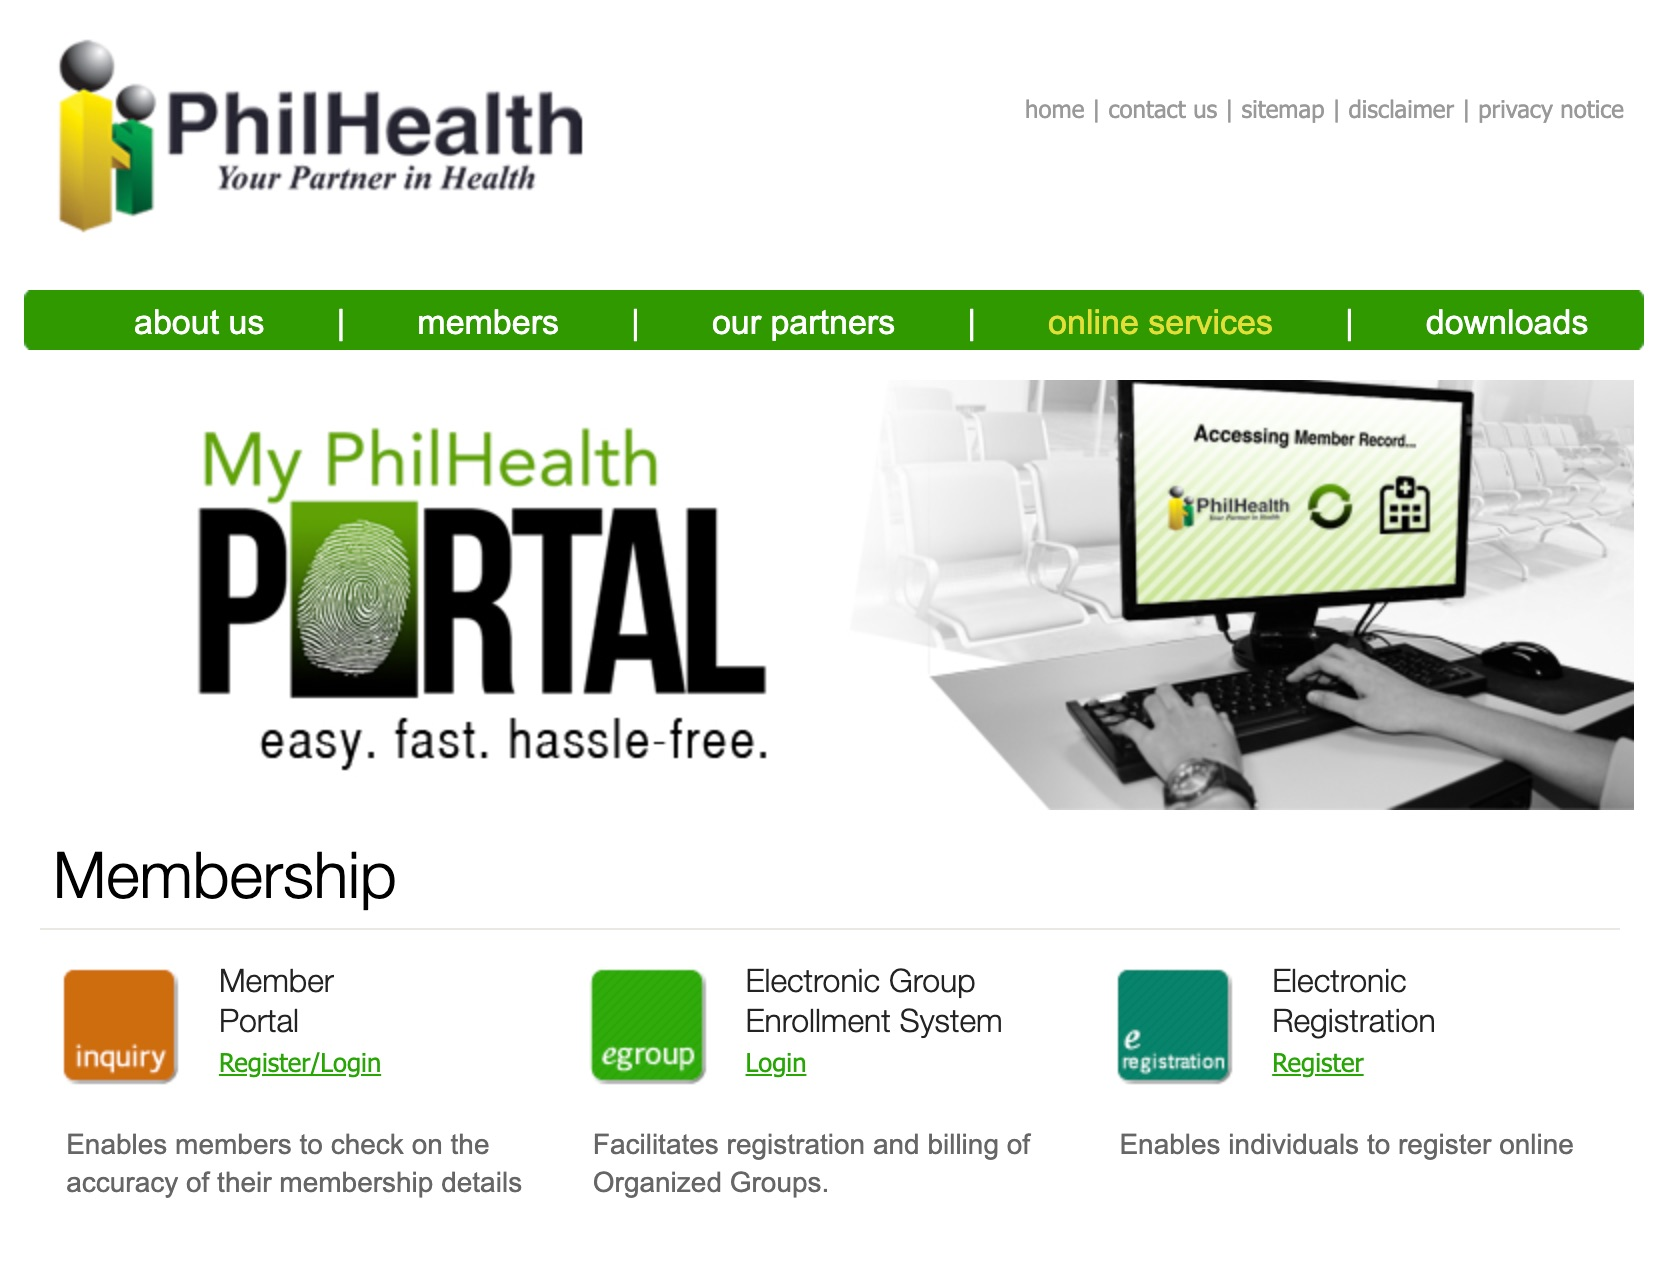 7 Steps on How to Register with Philhealth Online Portal 2